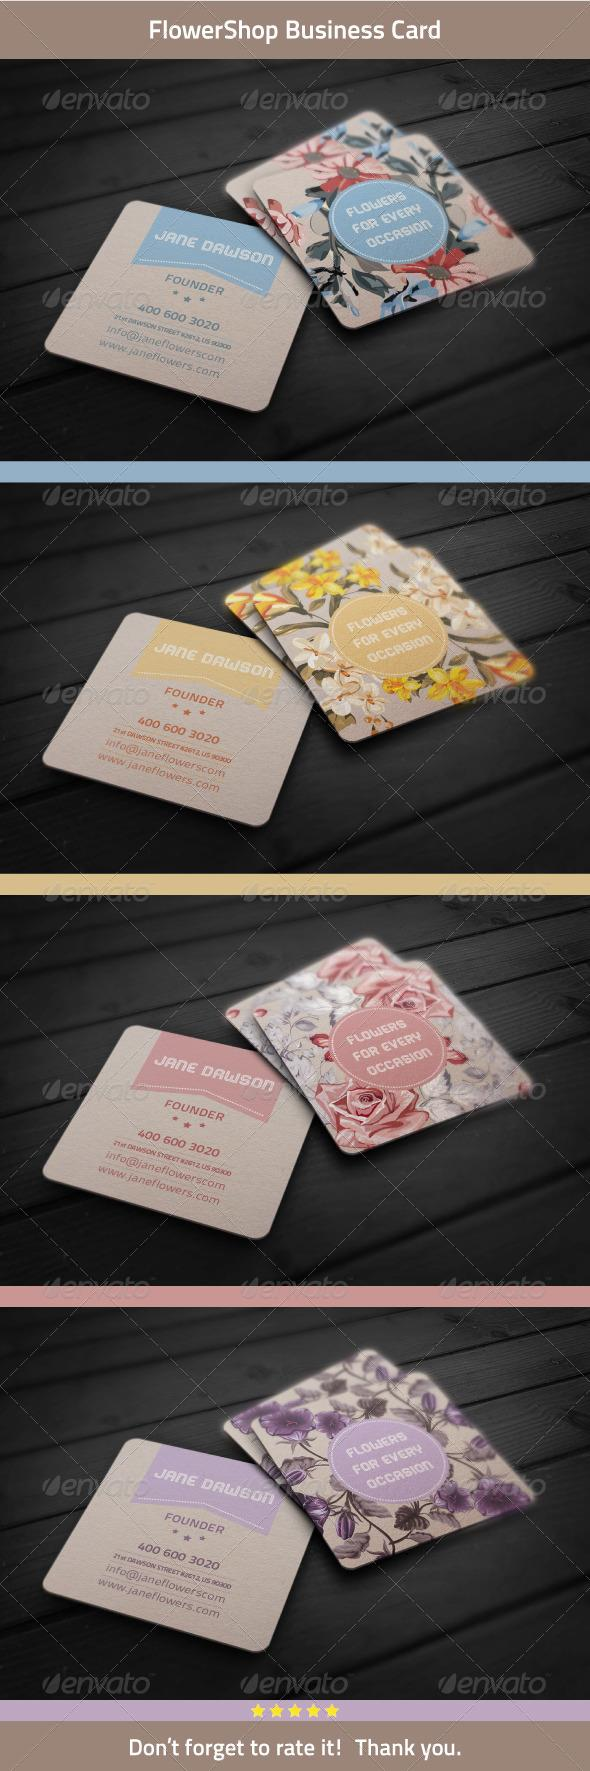 Flower shop business card flower shops business cards and business reheart Gallery